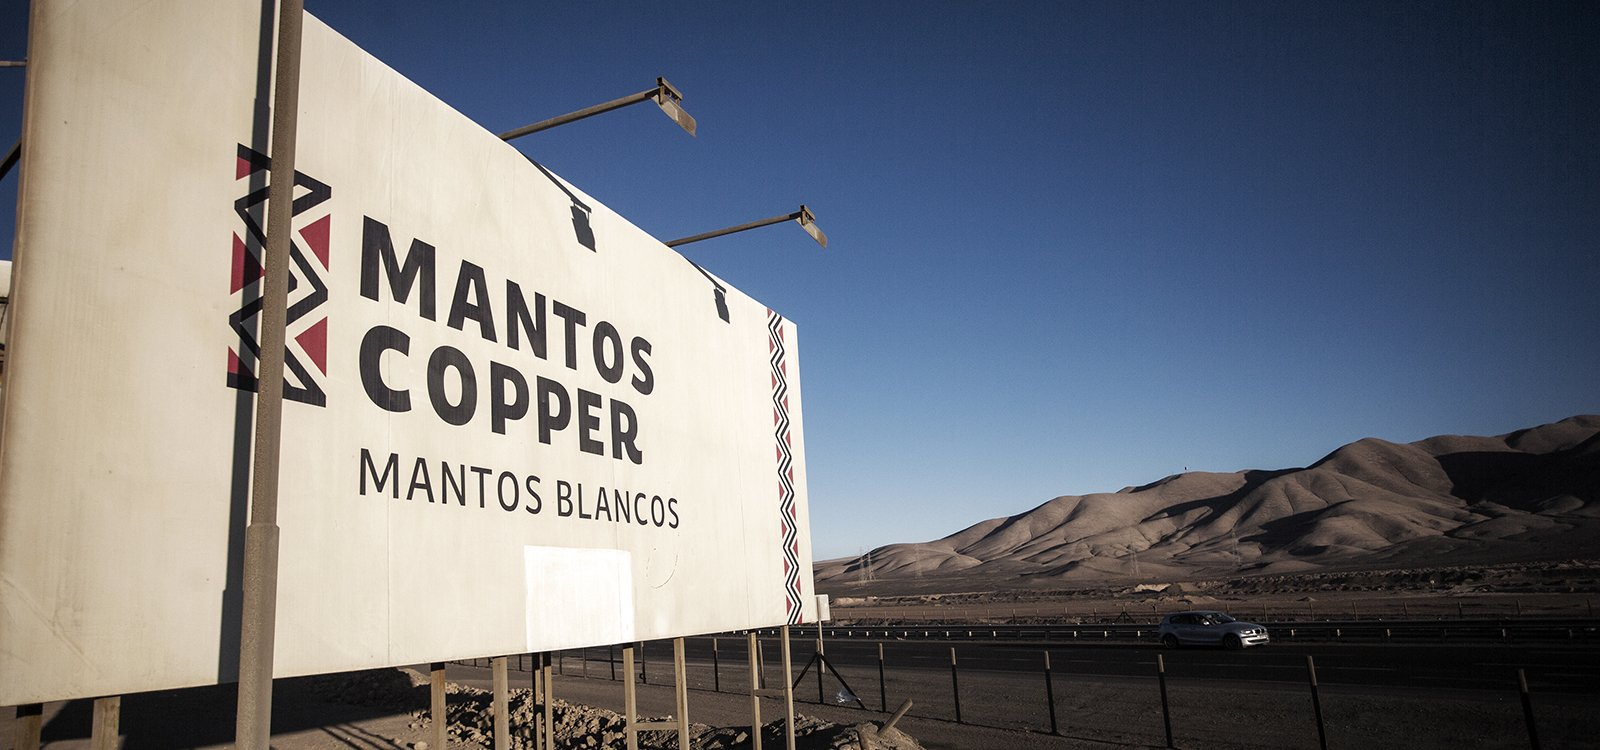 Mantos Blancos sits 800 metres above sea level in the Atacama Desert, one of the most arid places on the planet.